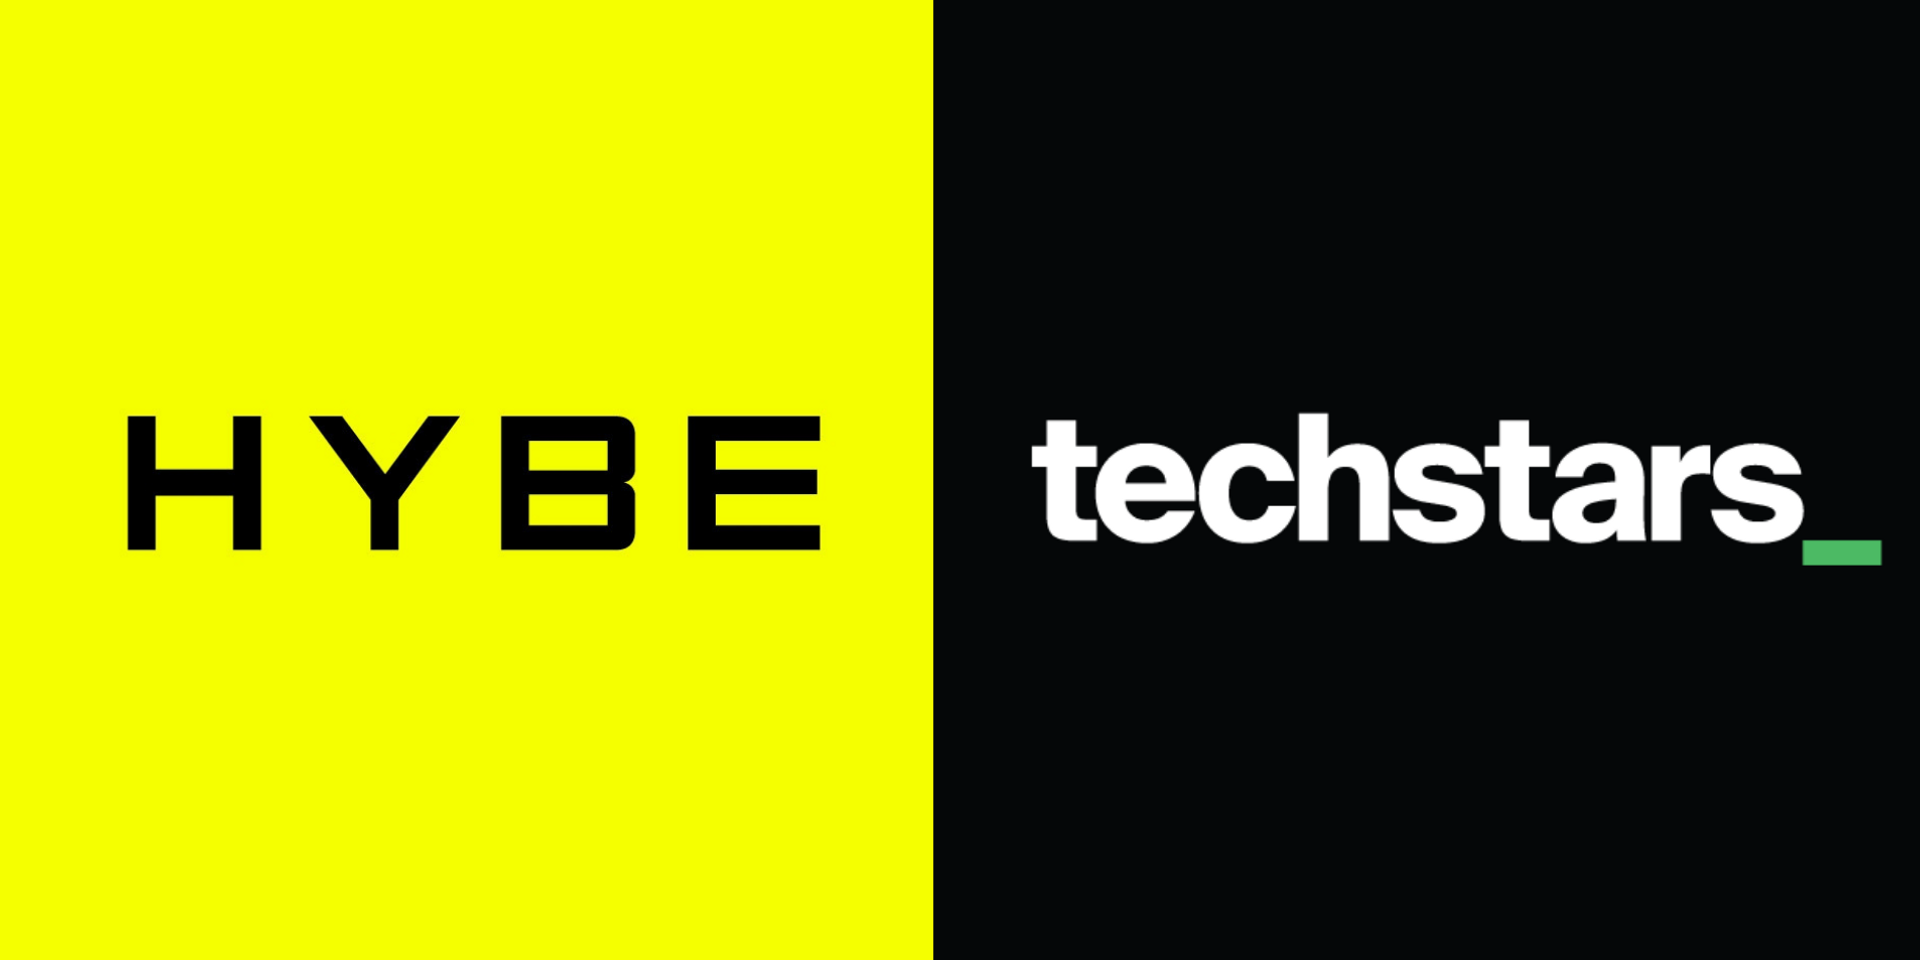 HYBE joins Avex, Amazon Music, Warner Music Group, and more in Techstars' music startup accelerator programme as an investor partner